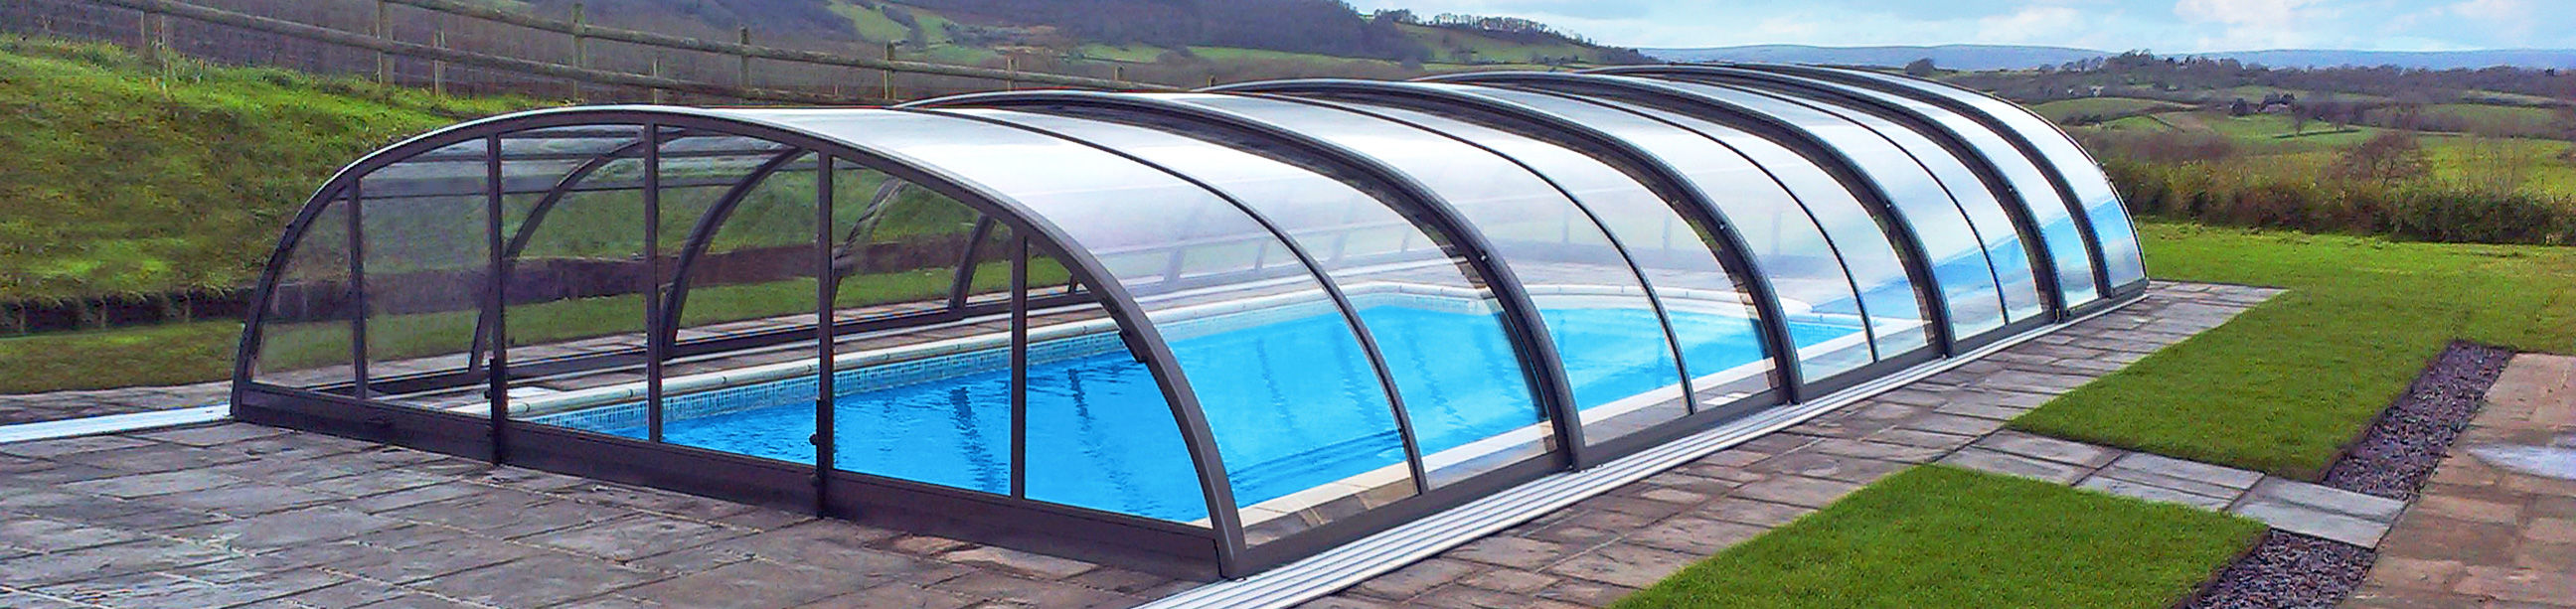 Retractable pool enclosures for your swimming pool sunrooms Retractable swimming pool enclosures